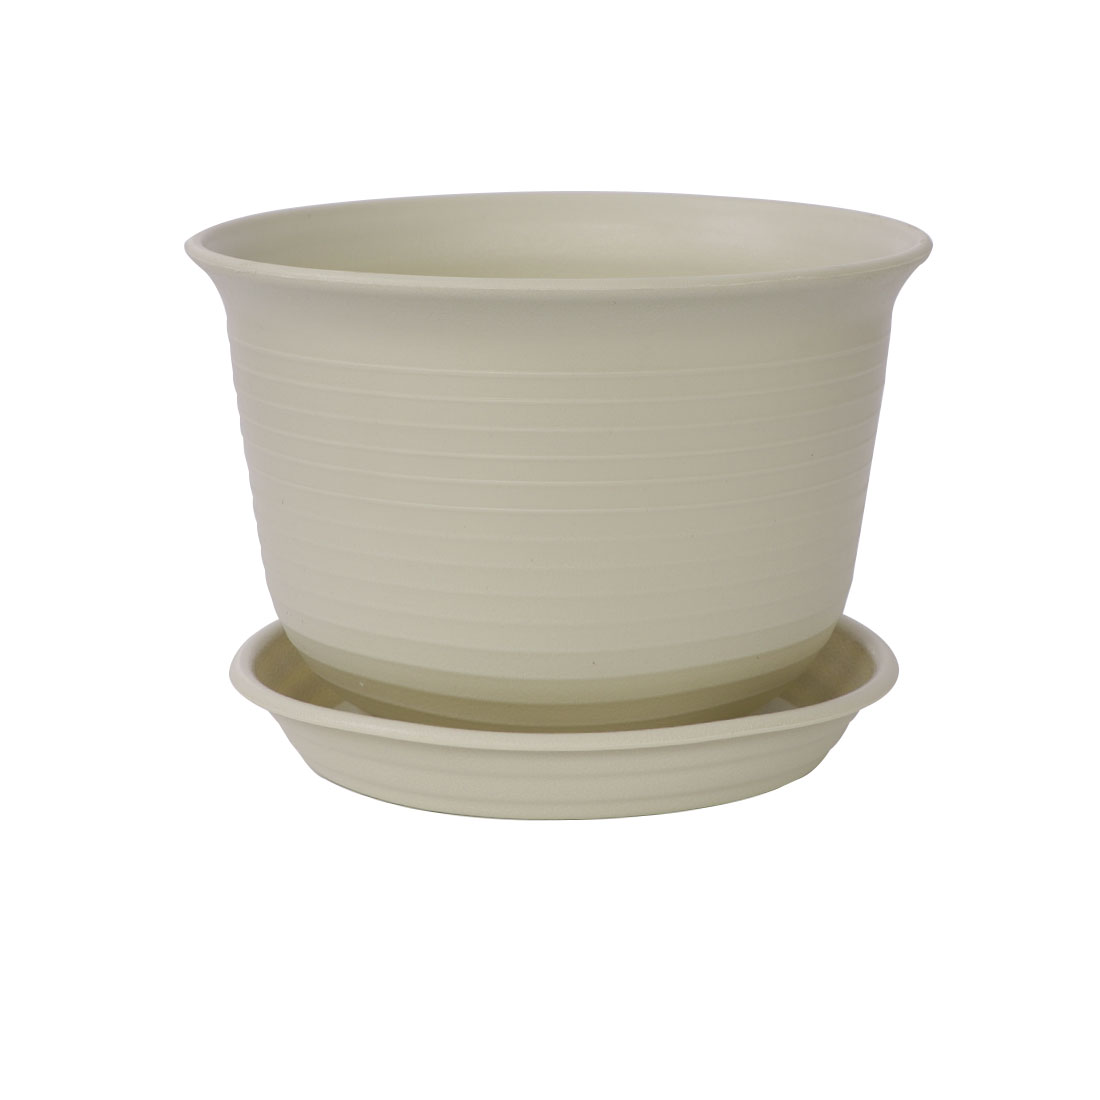 Balcony Office Garden Plastic Round Plant Holder Container Flower Pot Tray Khaki